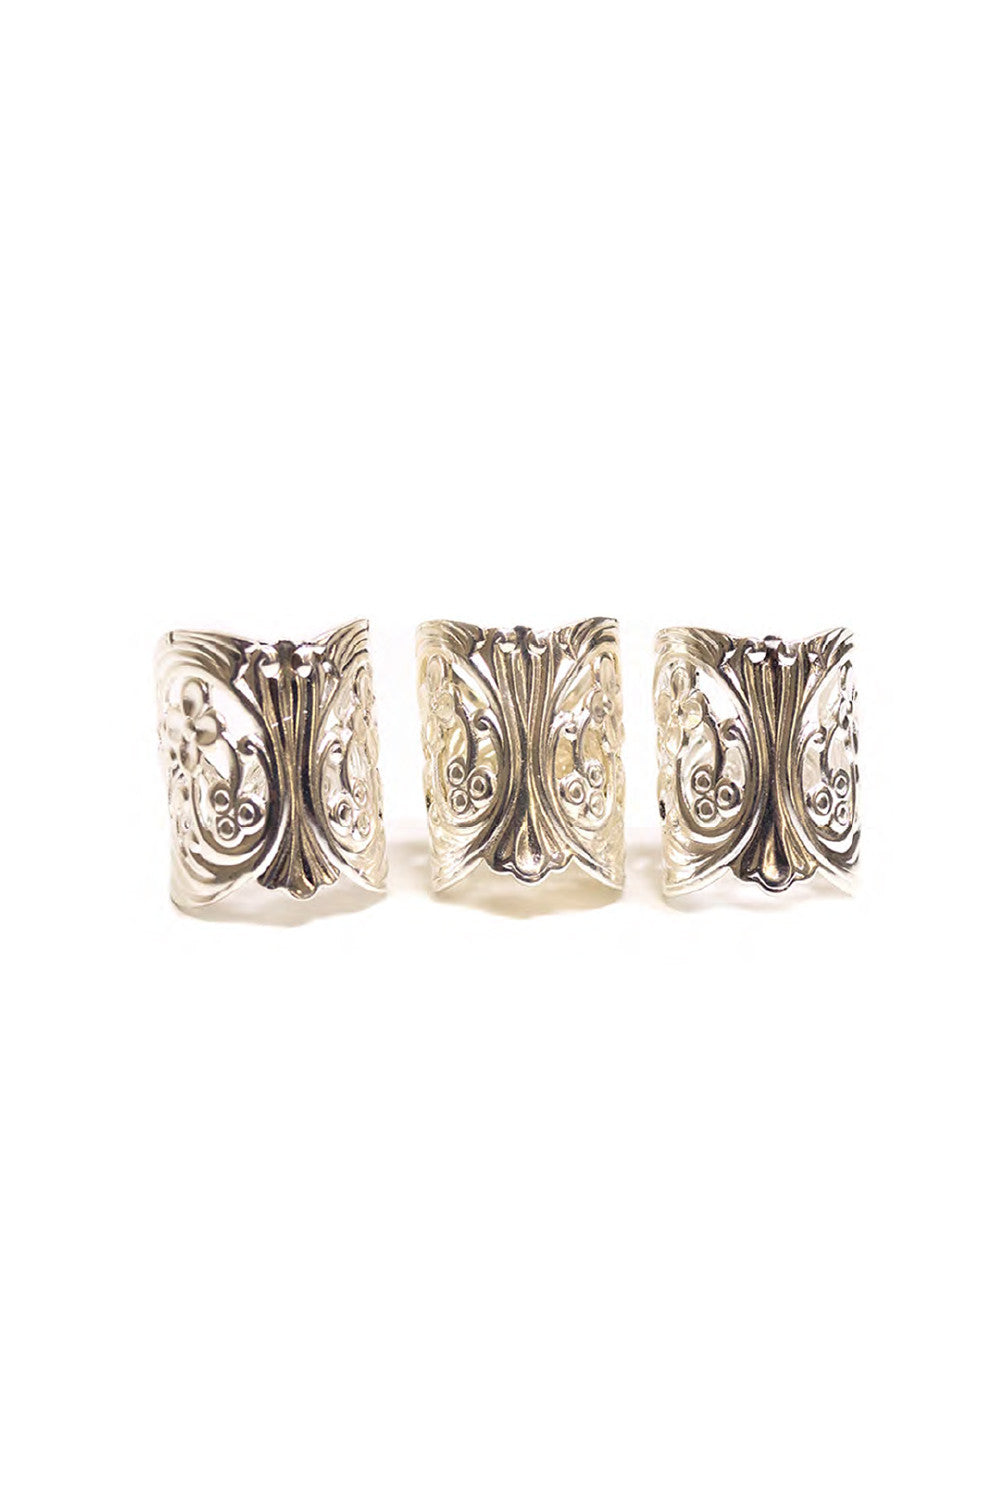 LACE CUFF RINGS IN SILVER (SET OF 3)